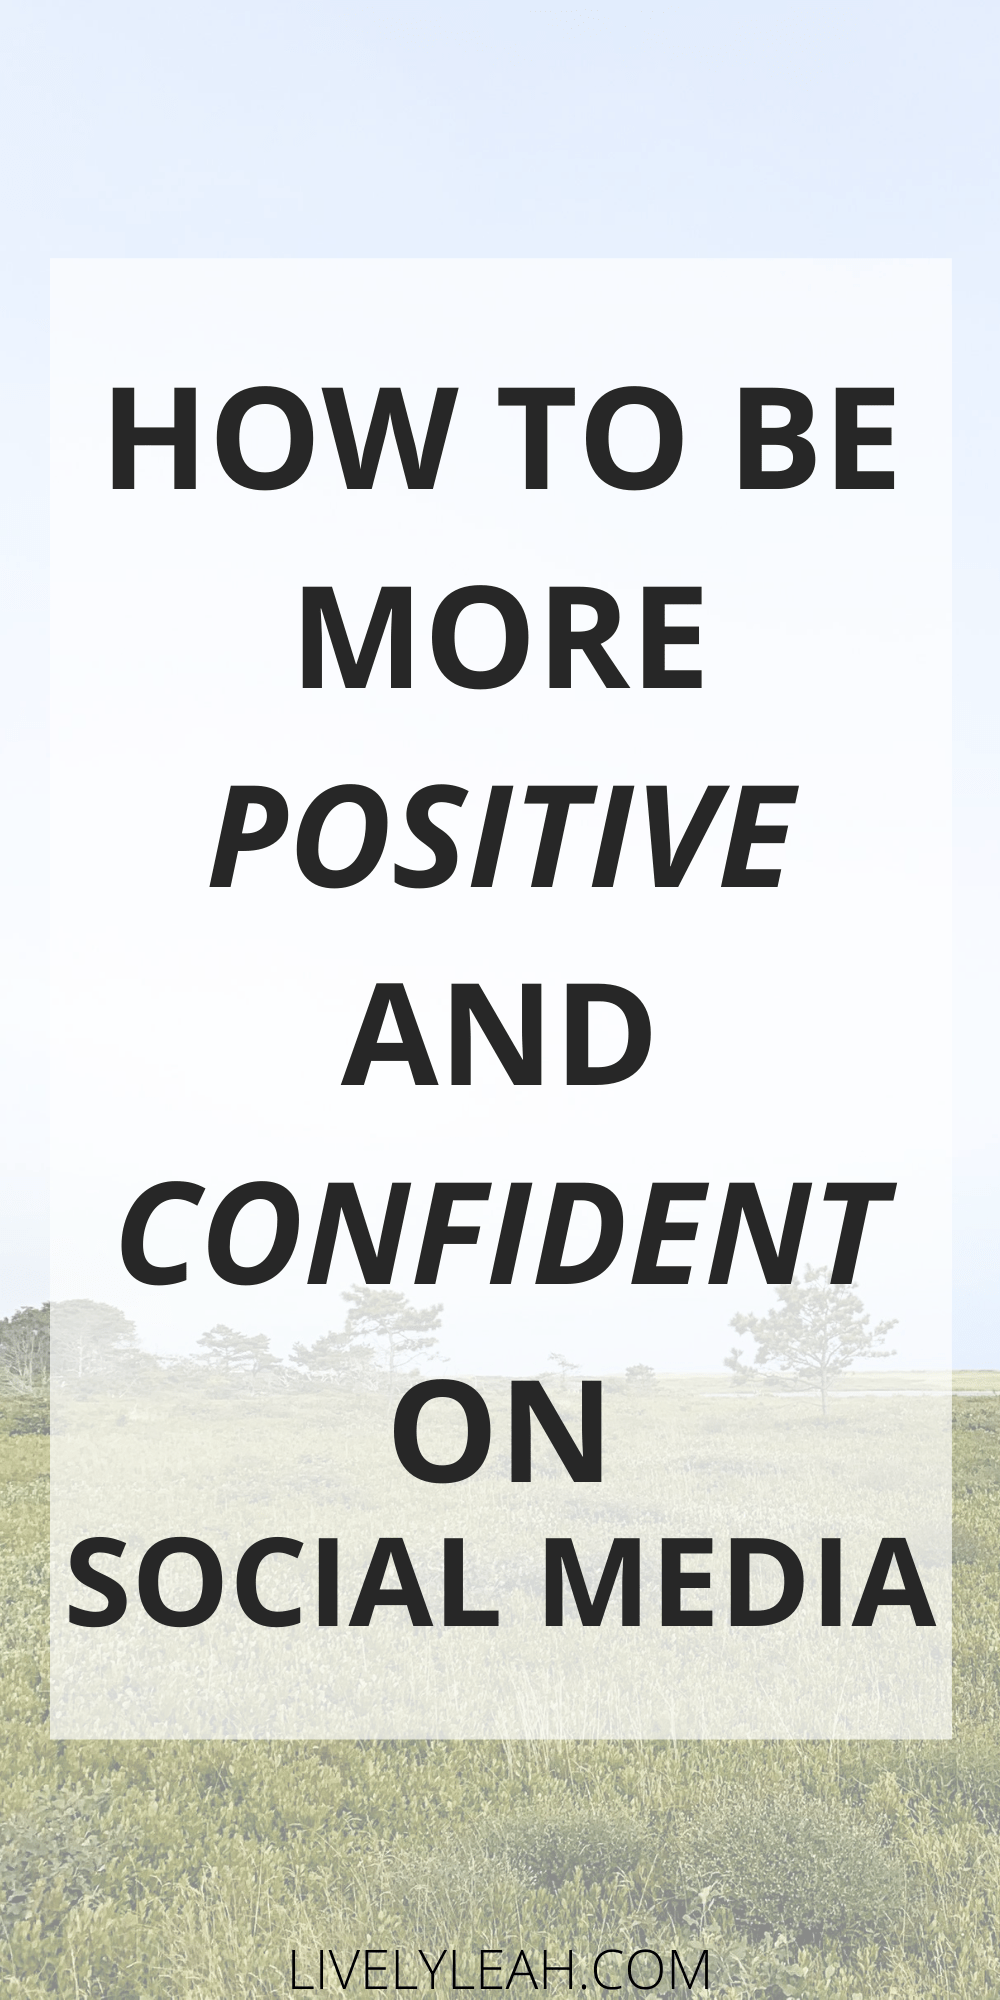 How To Be More Positive And Confident On Social Media